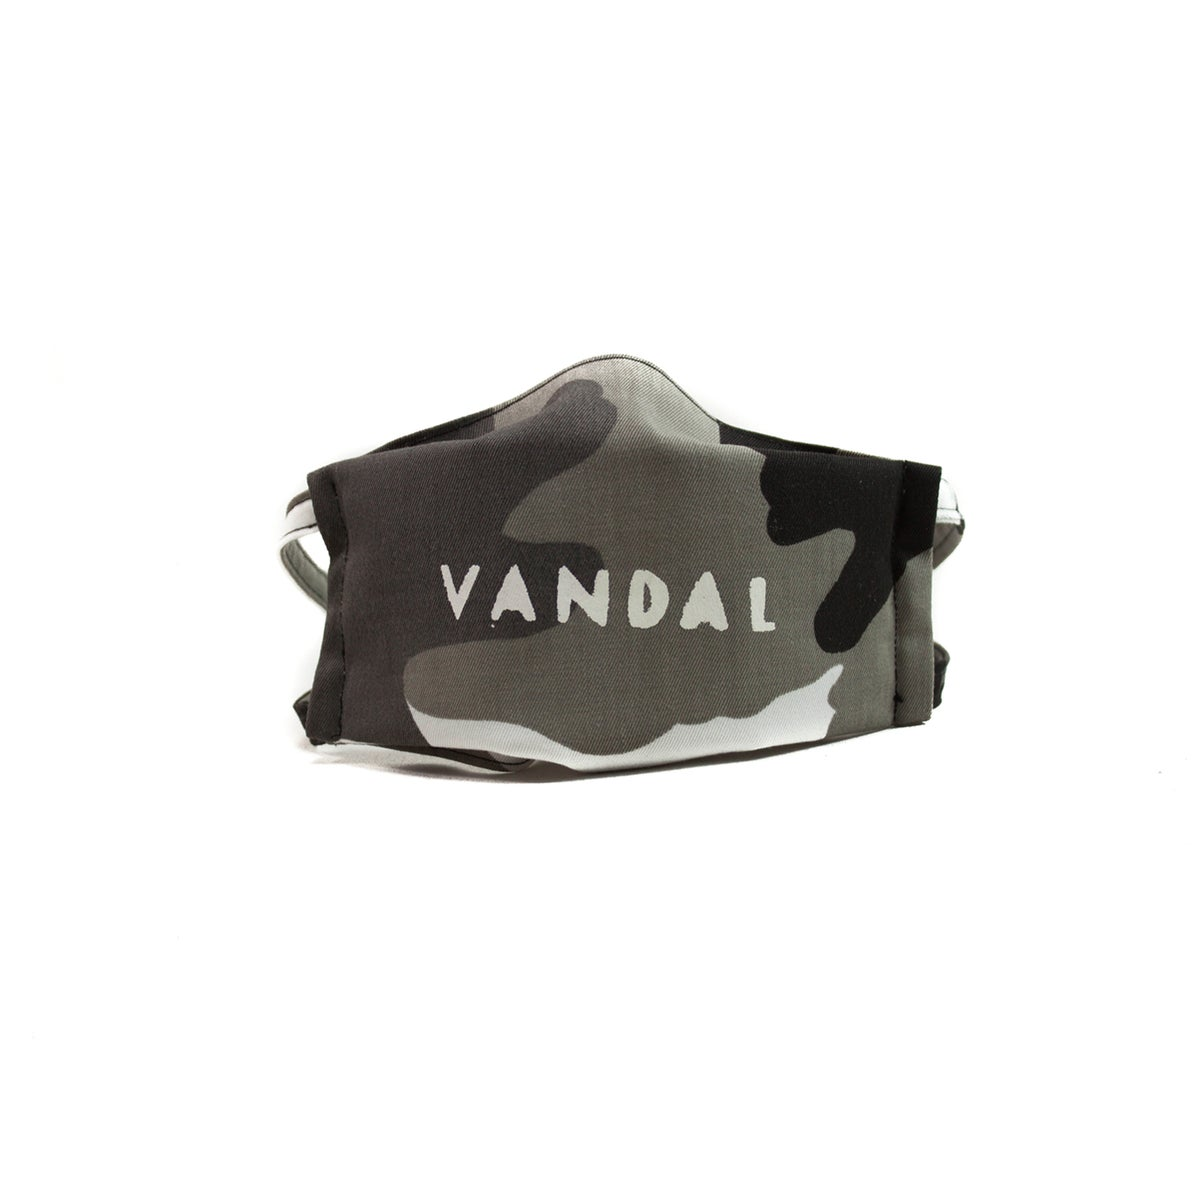 Image of VANDAL FACE MASK WITH FILTERS